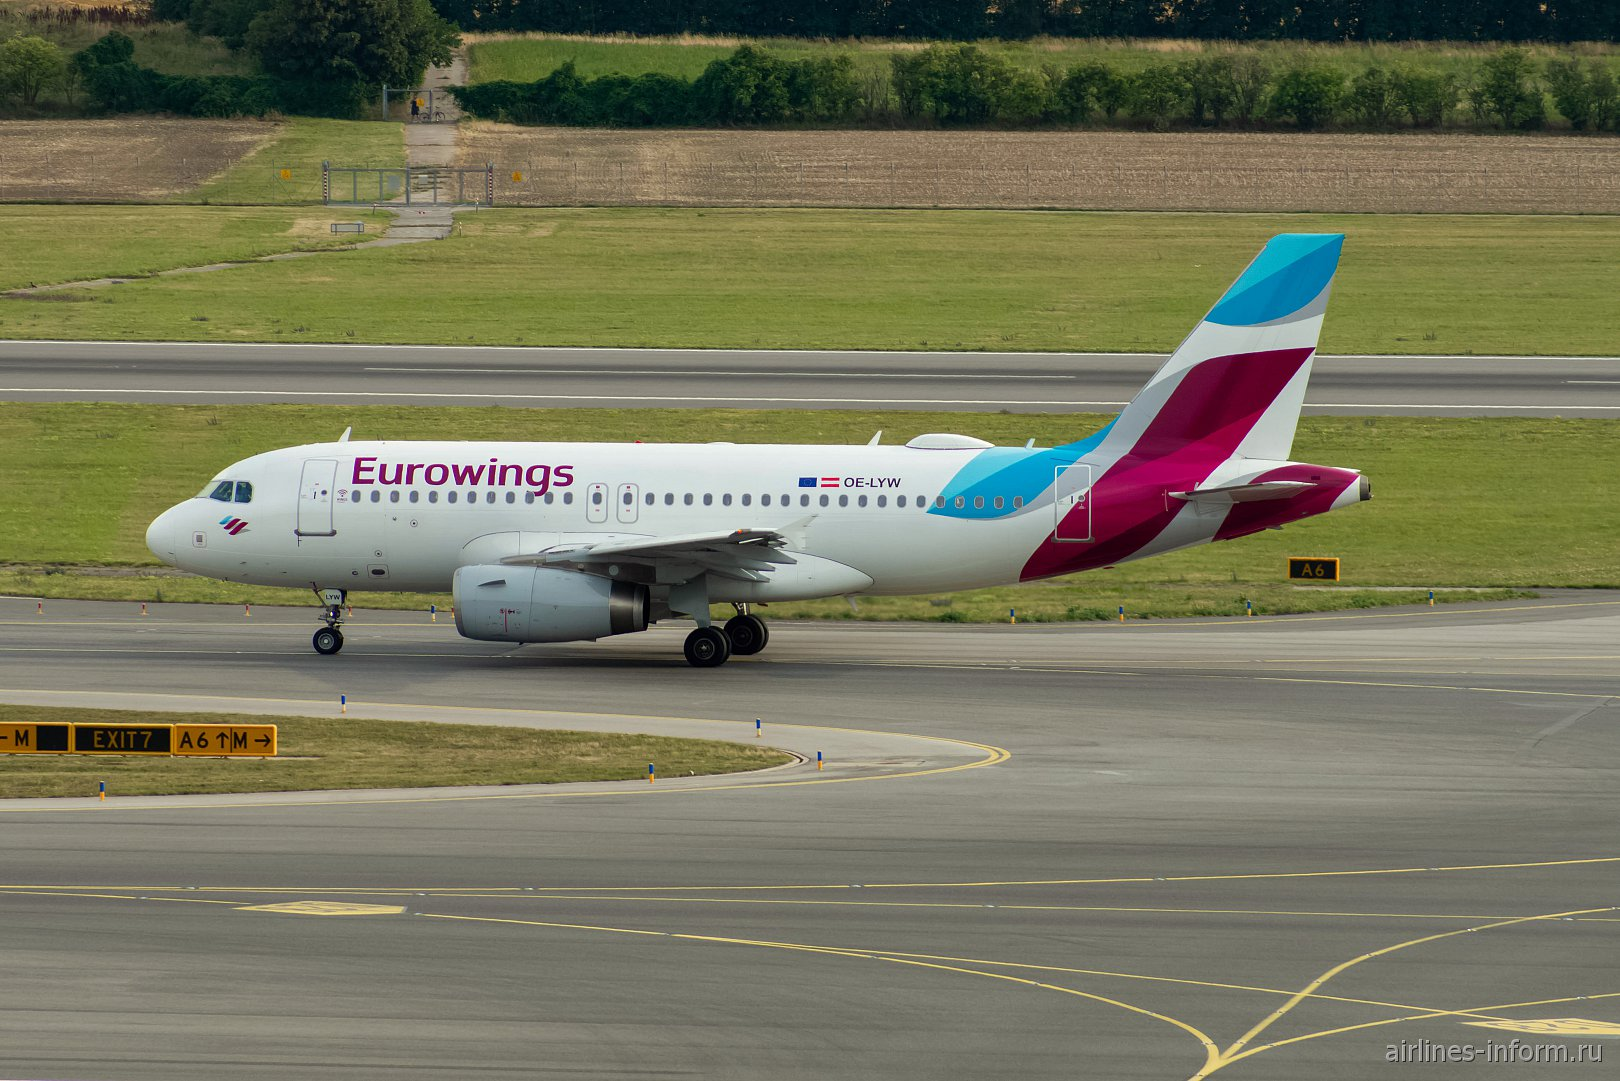 Airbus A319 OE-LYW авиакомпании Eurowings Europe в аэропорту Вена Швехат